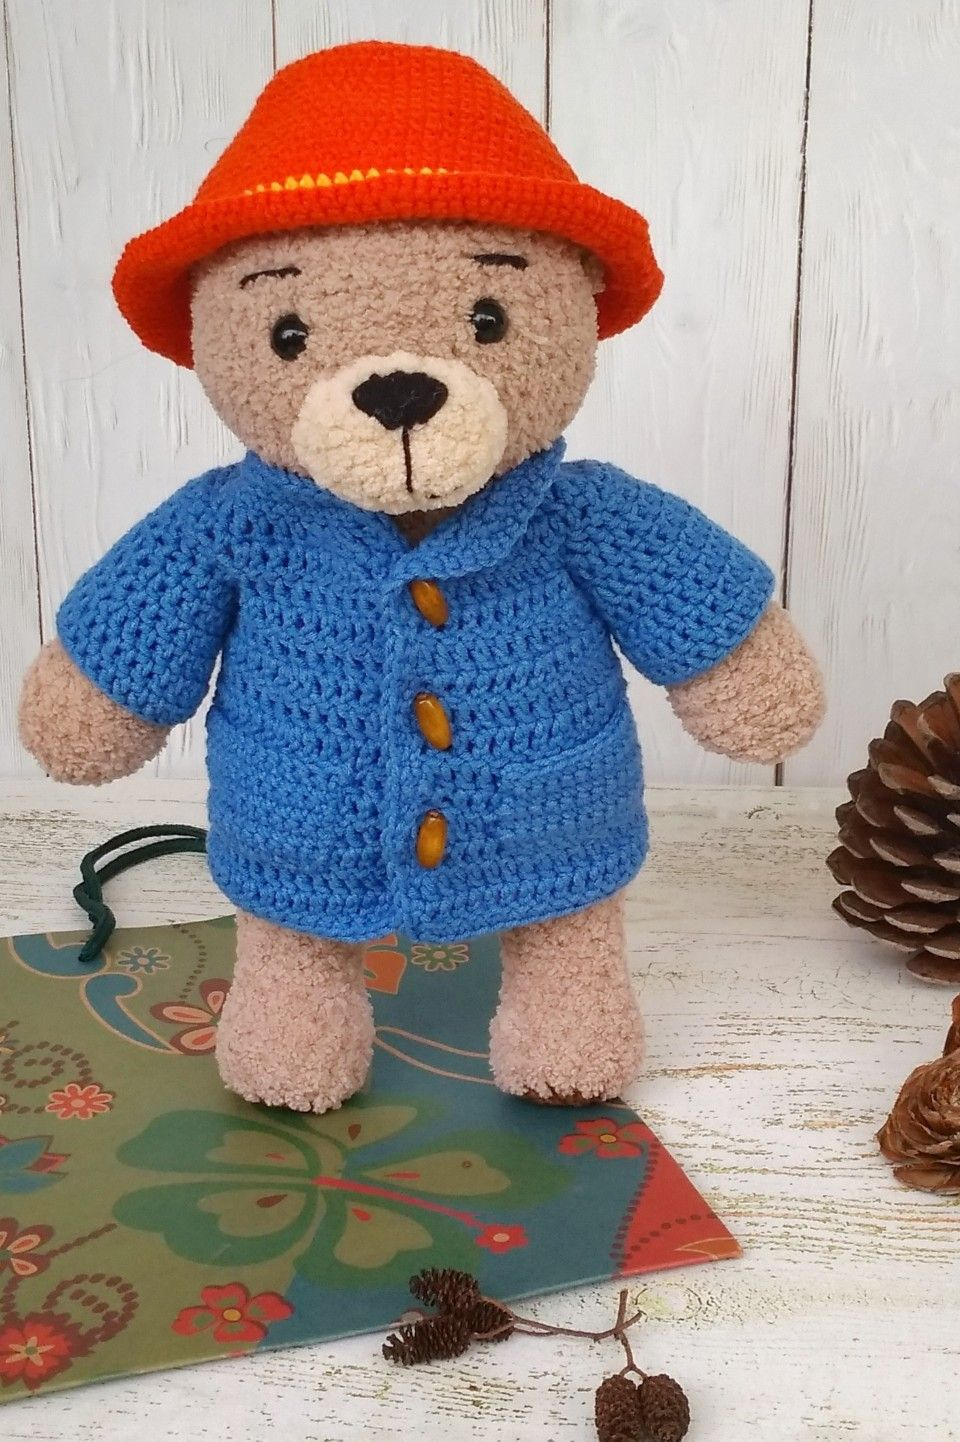 Paddington Bear Crocheted bear Cute teddy bear Plush bear Handmade Interior toy Gift for